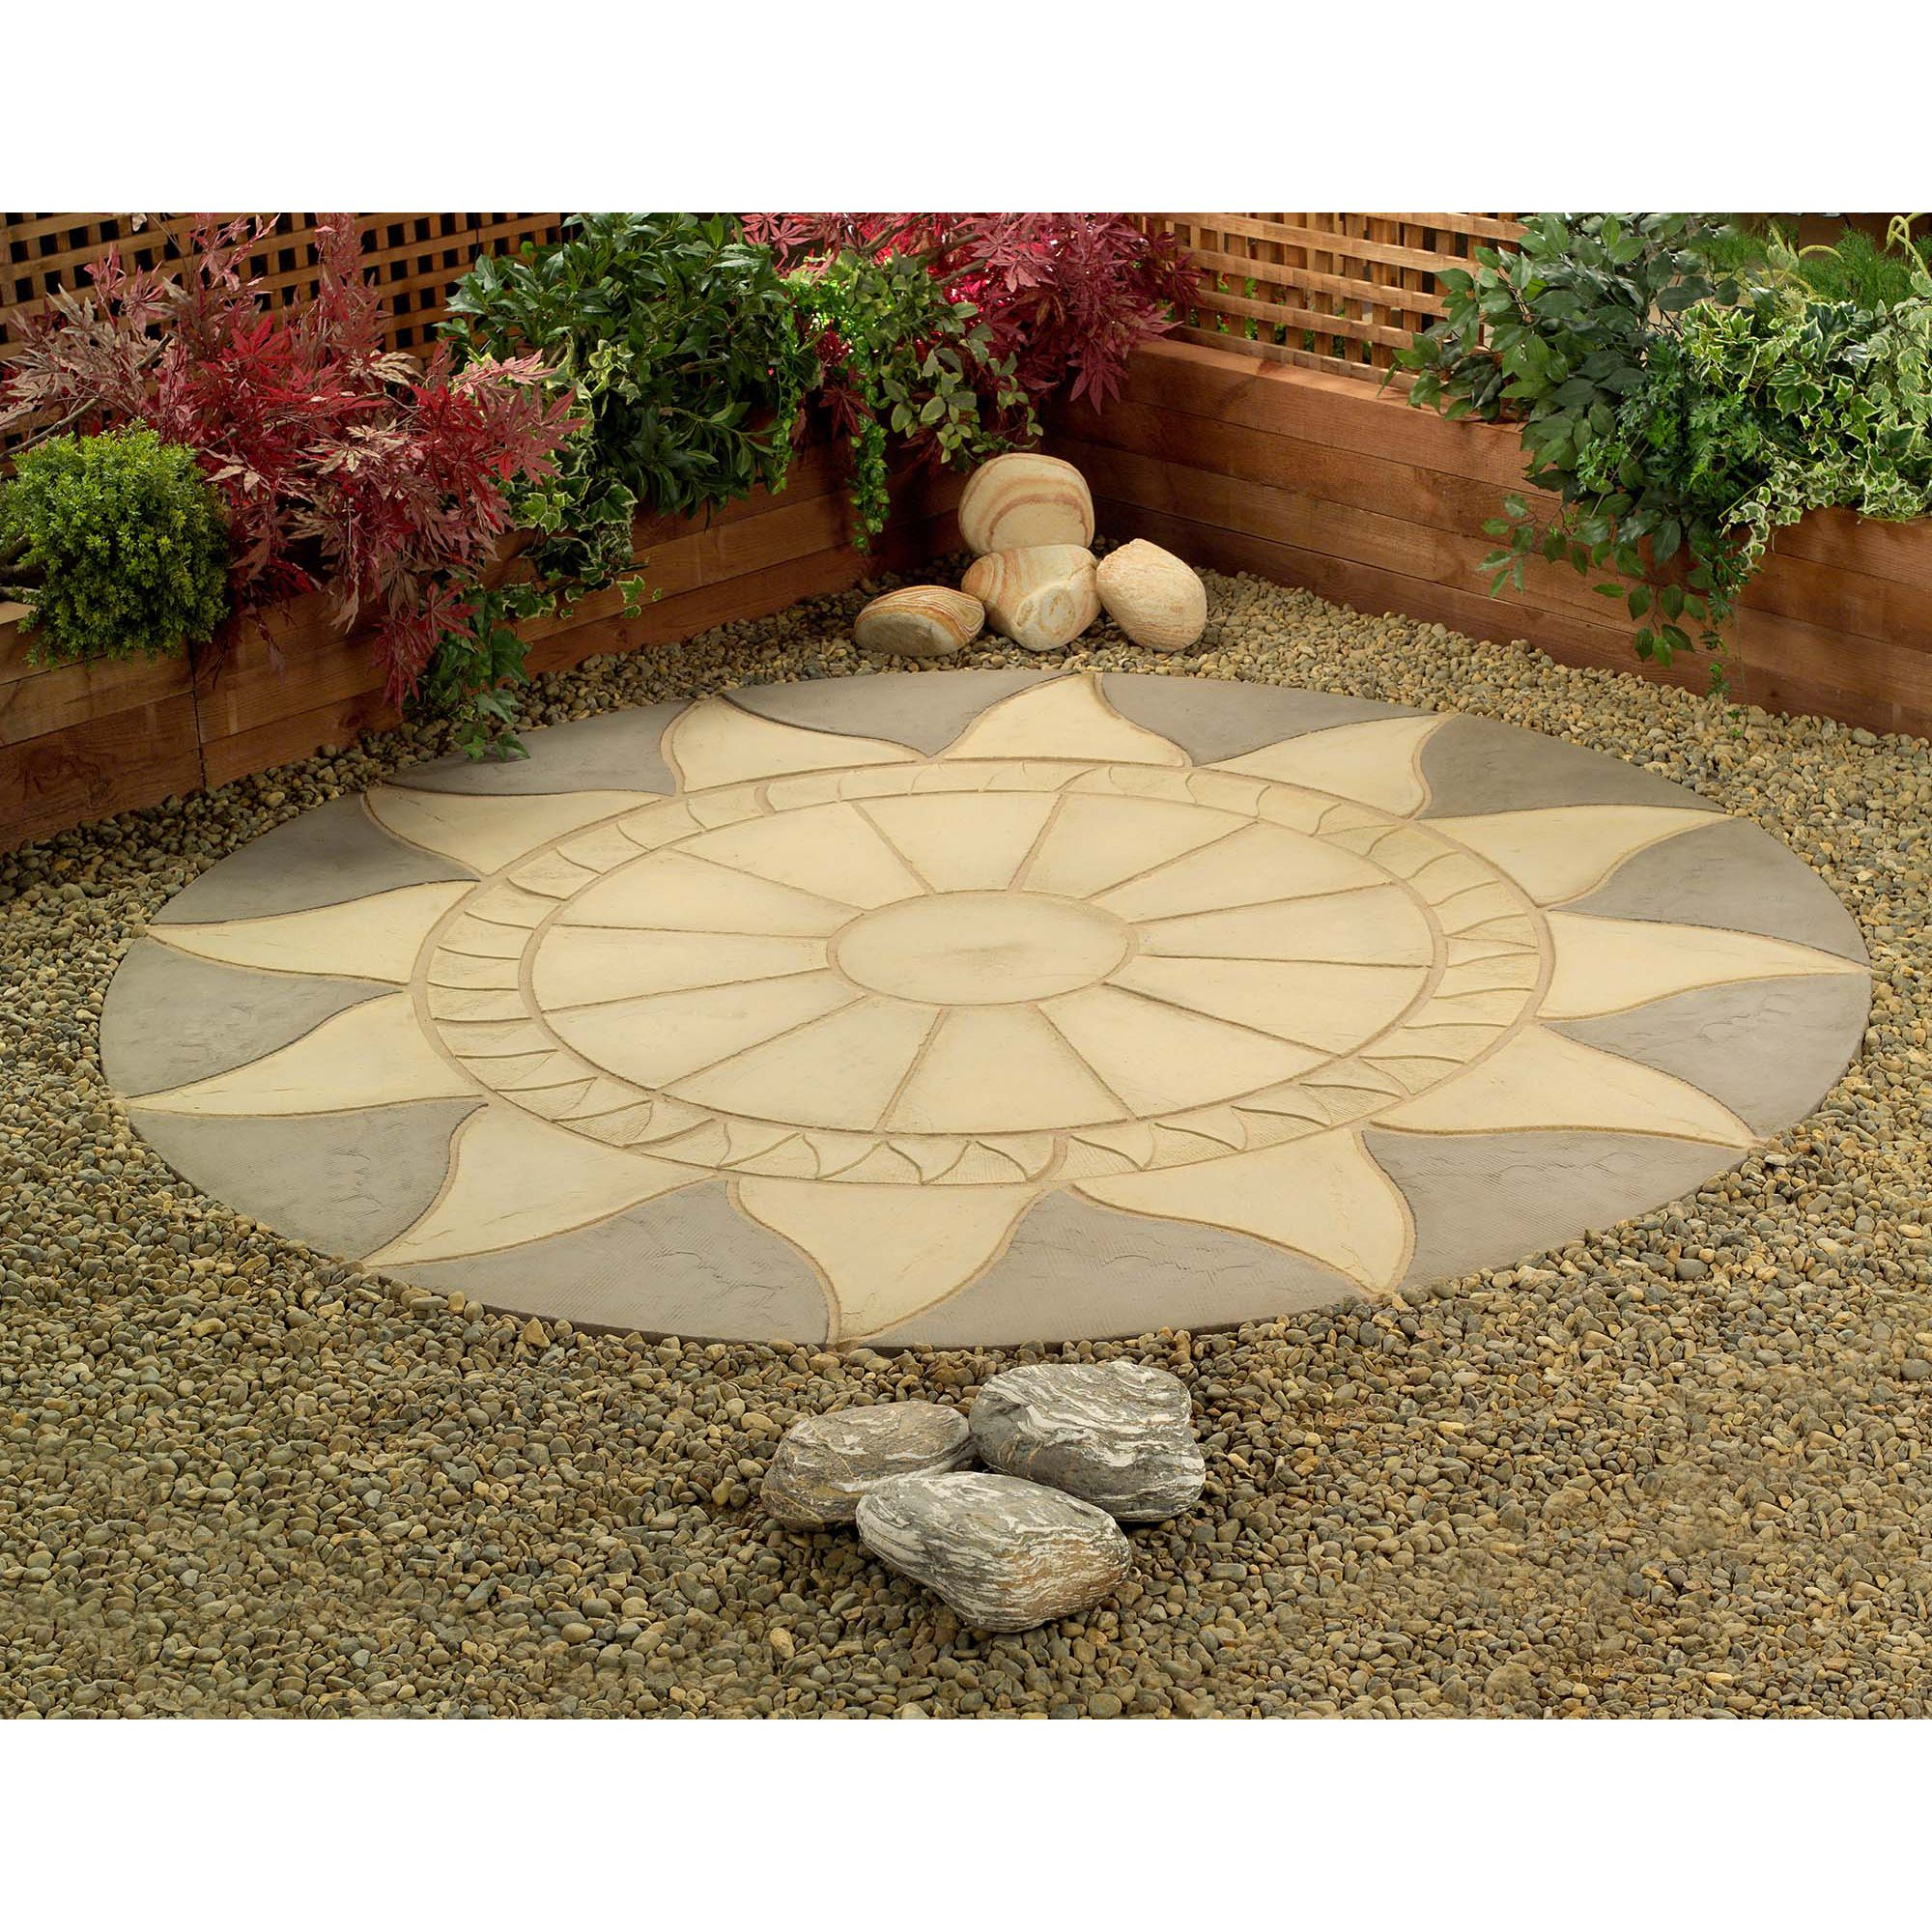 Sunstone Circle Patio Kit 2.56m Diameter at Tesco Direct